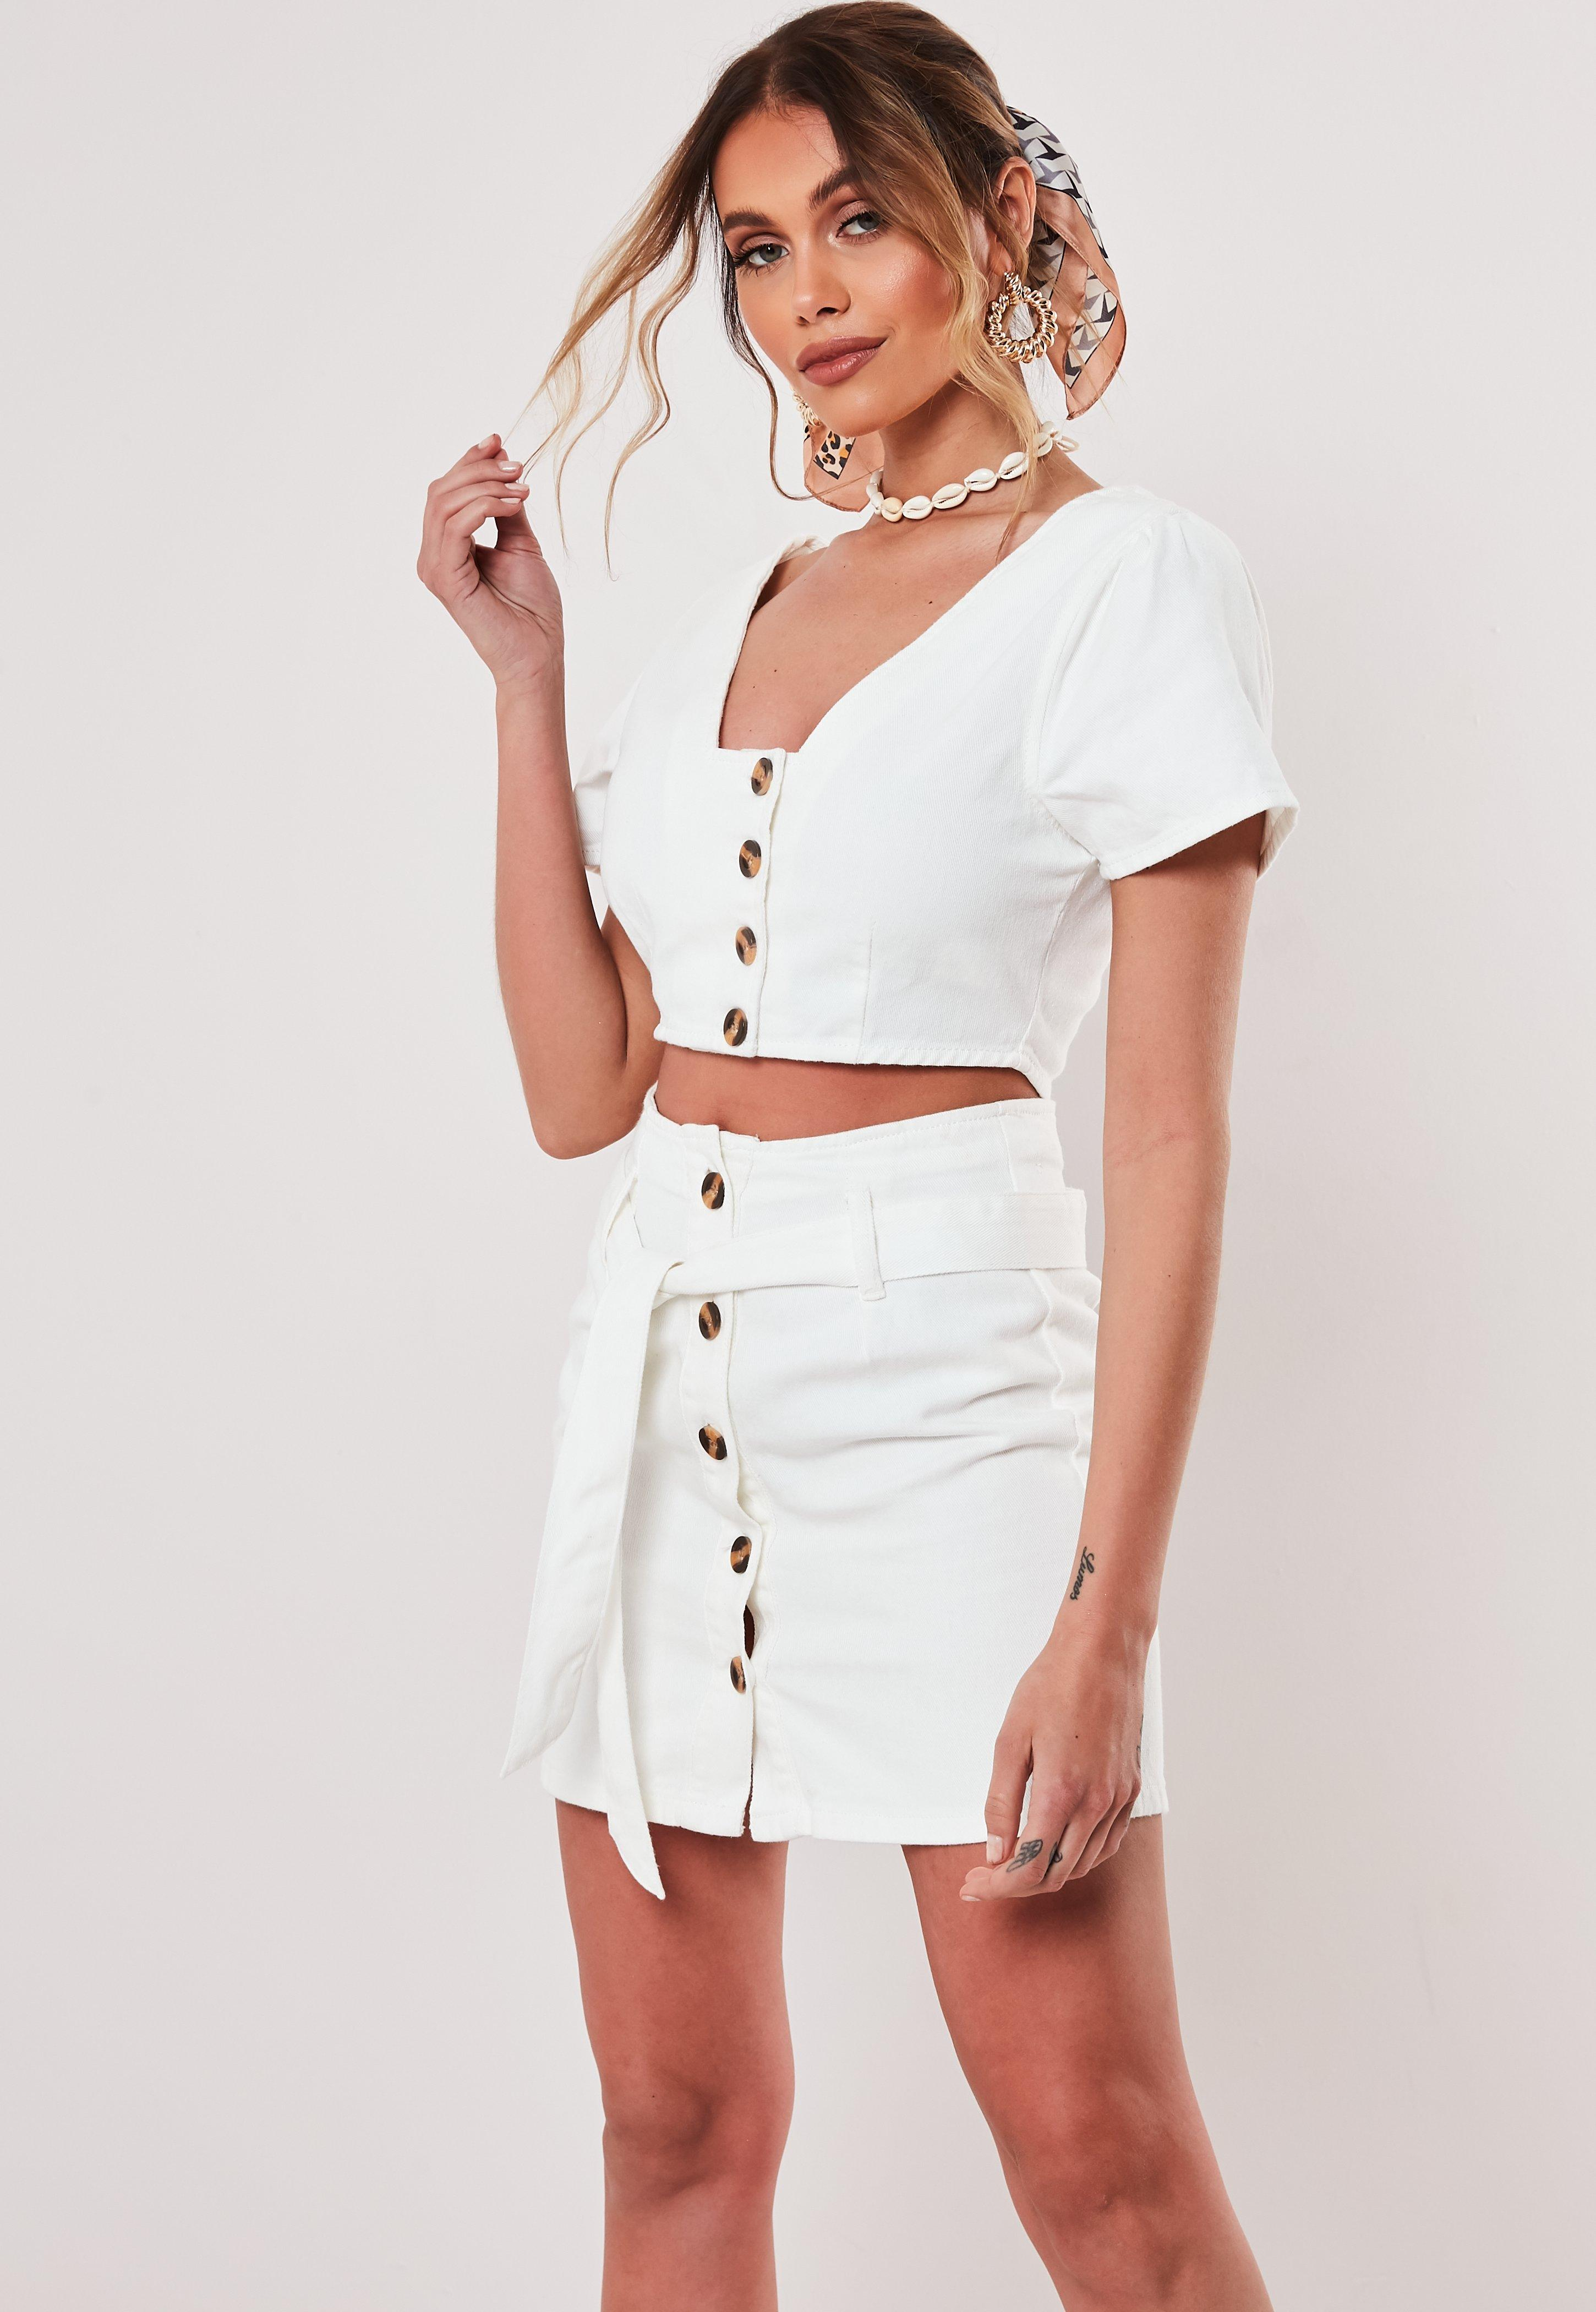 e4bb5a32121 Two Piece Sets - Two Piece Dresses, Co-ords & Outfits | Missguided